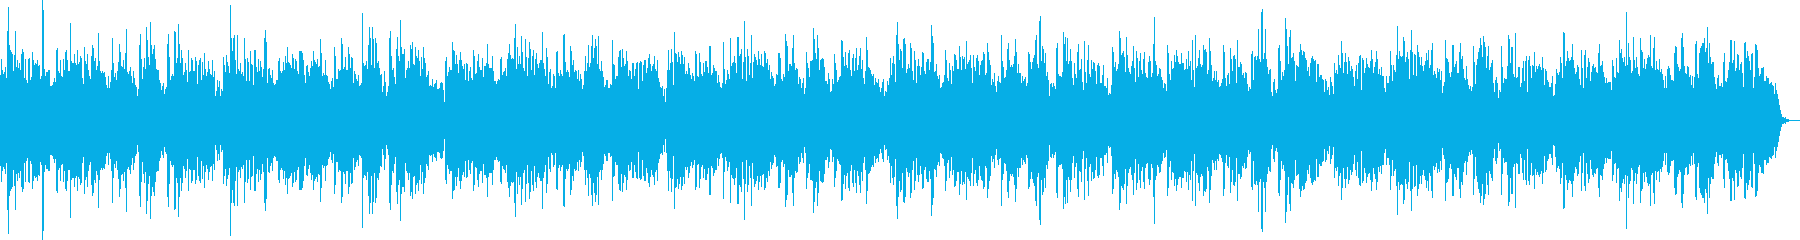 Transparent relaxation system's reproduced waveform